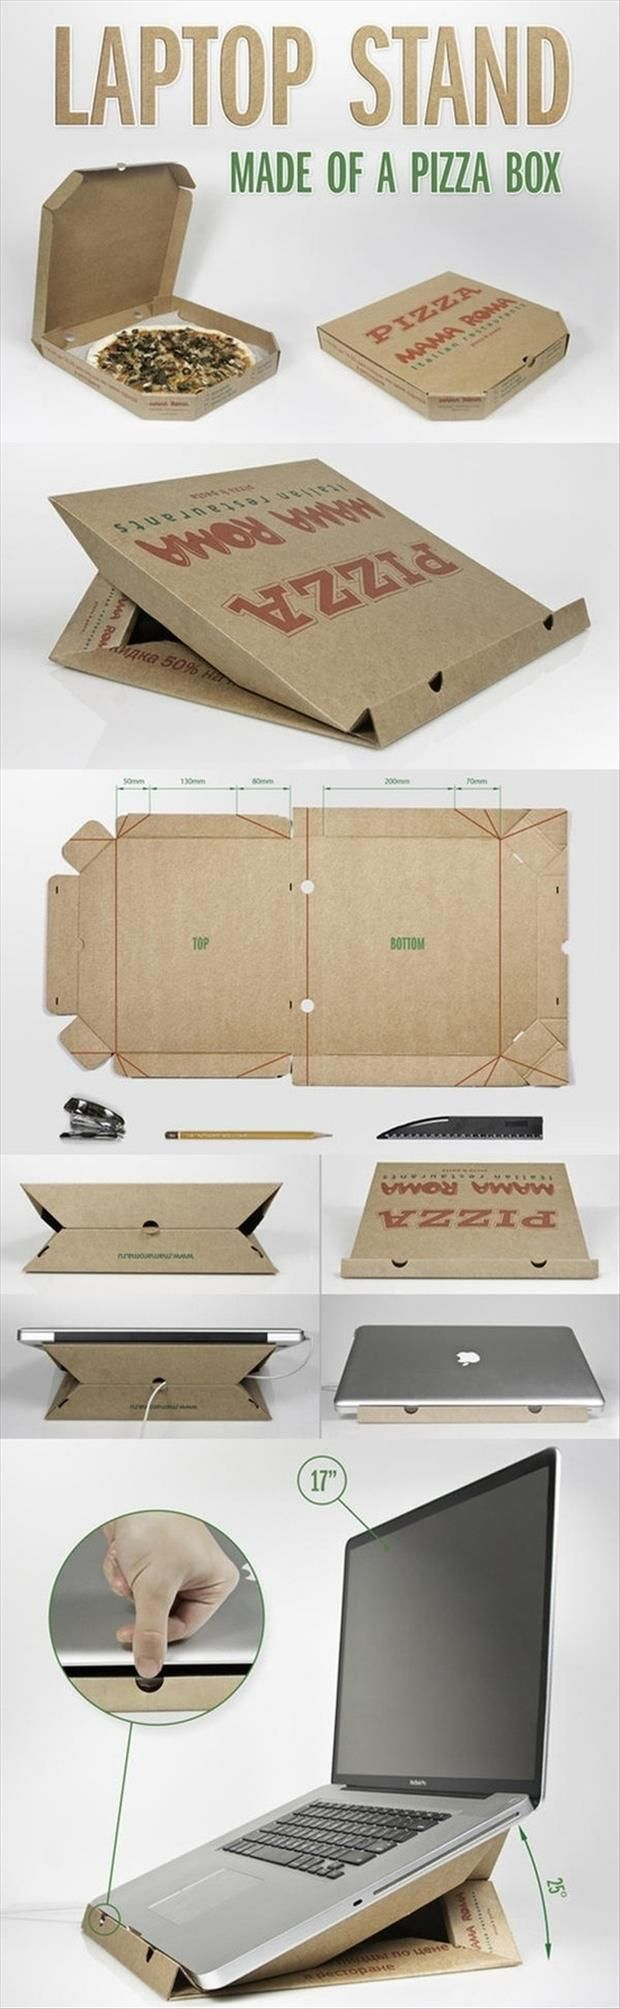 Dump A Day Amazing Uses For Pizza Boxes - 22 Pics